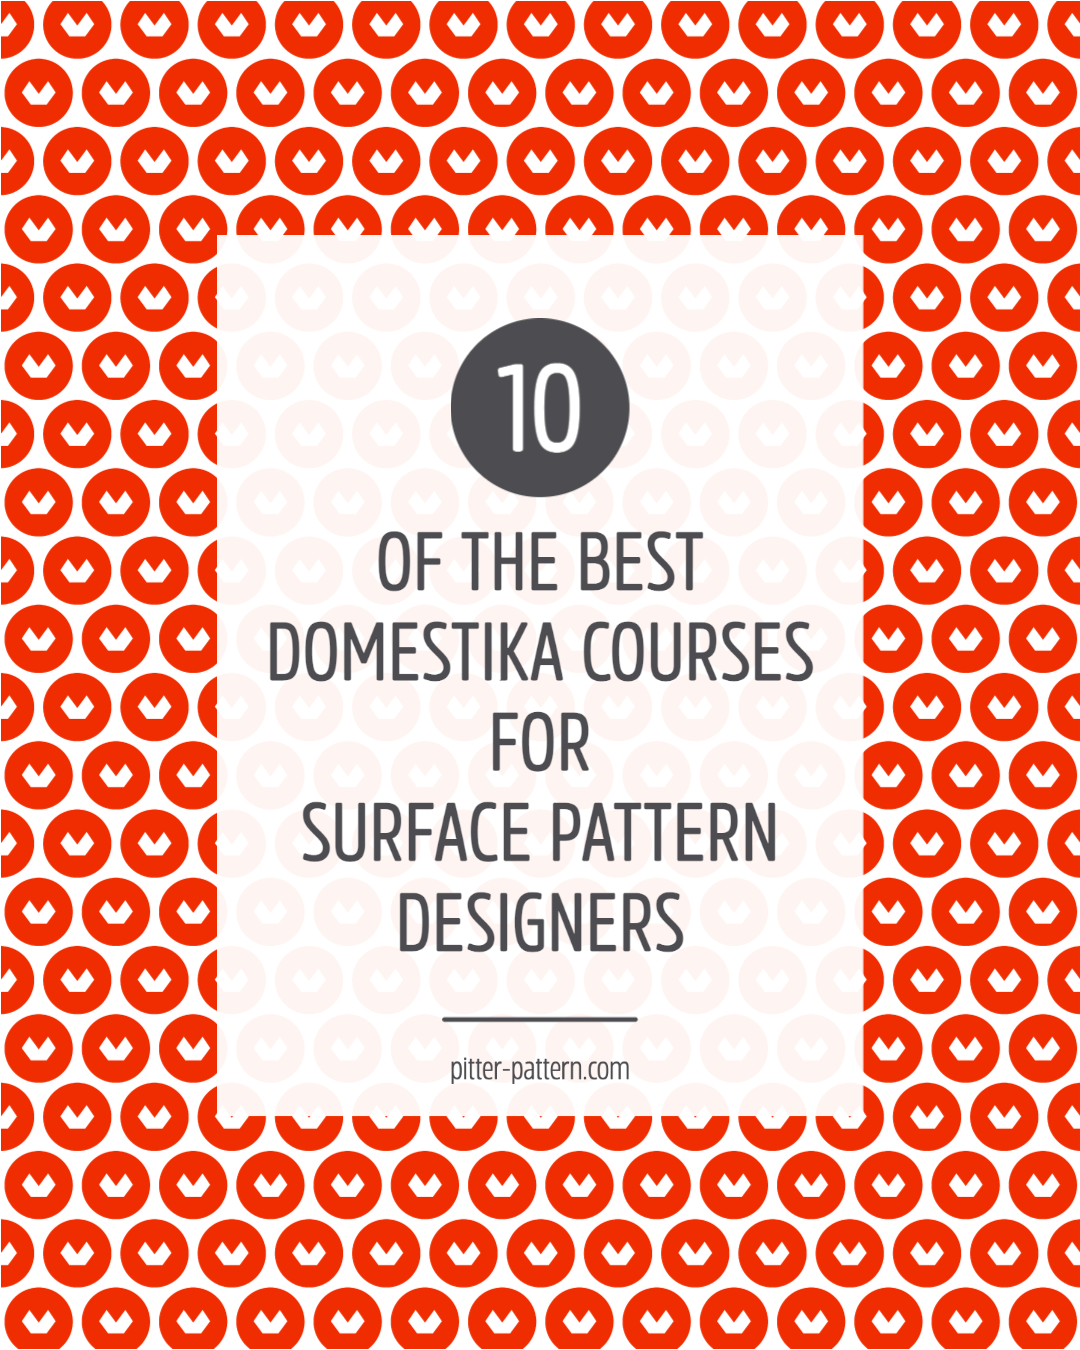 10 of the best Domestika courses for surface pattern designers | Pitter Pattern